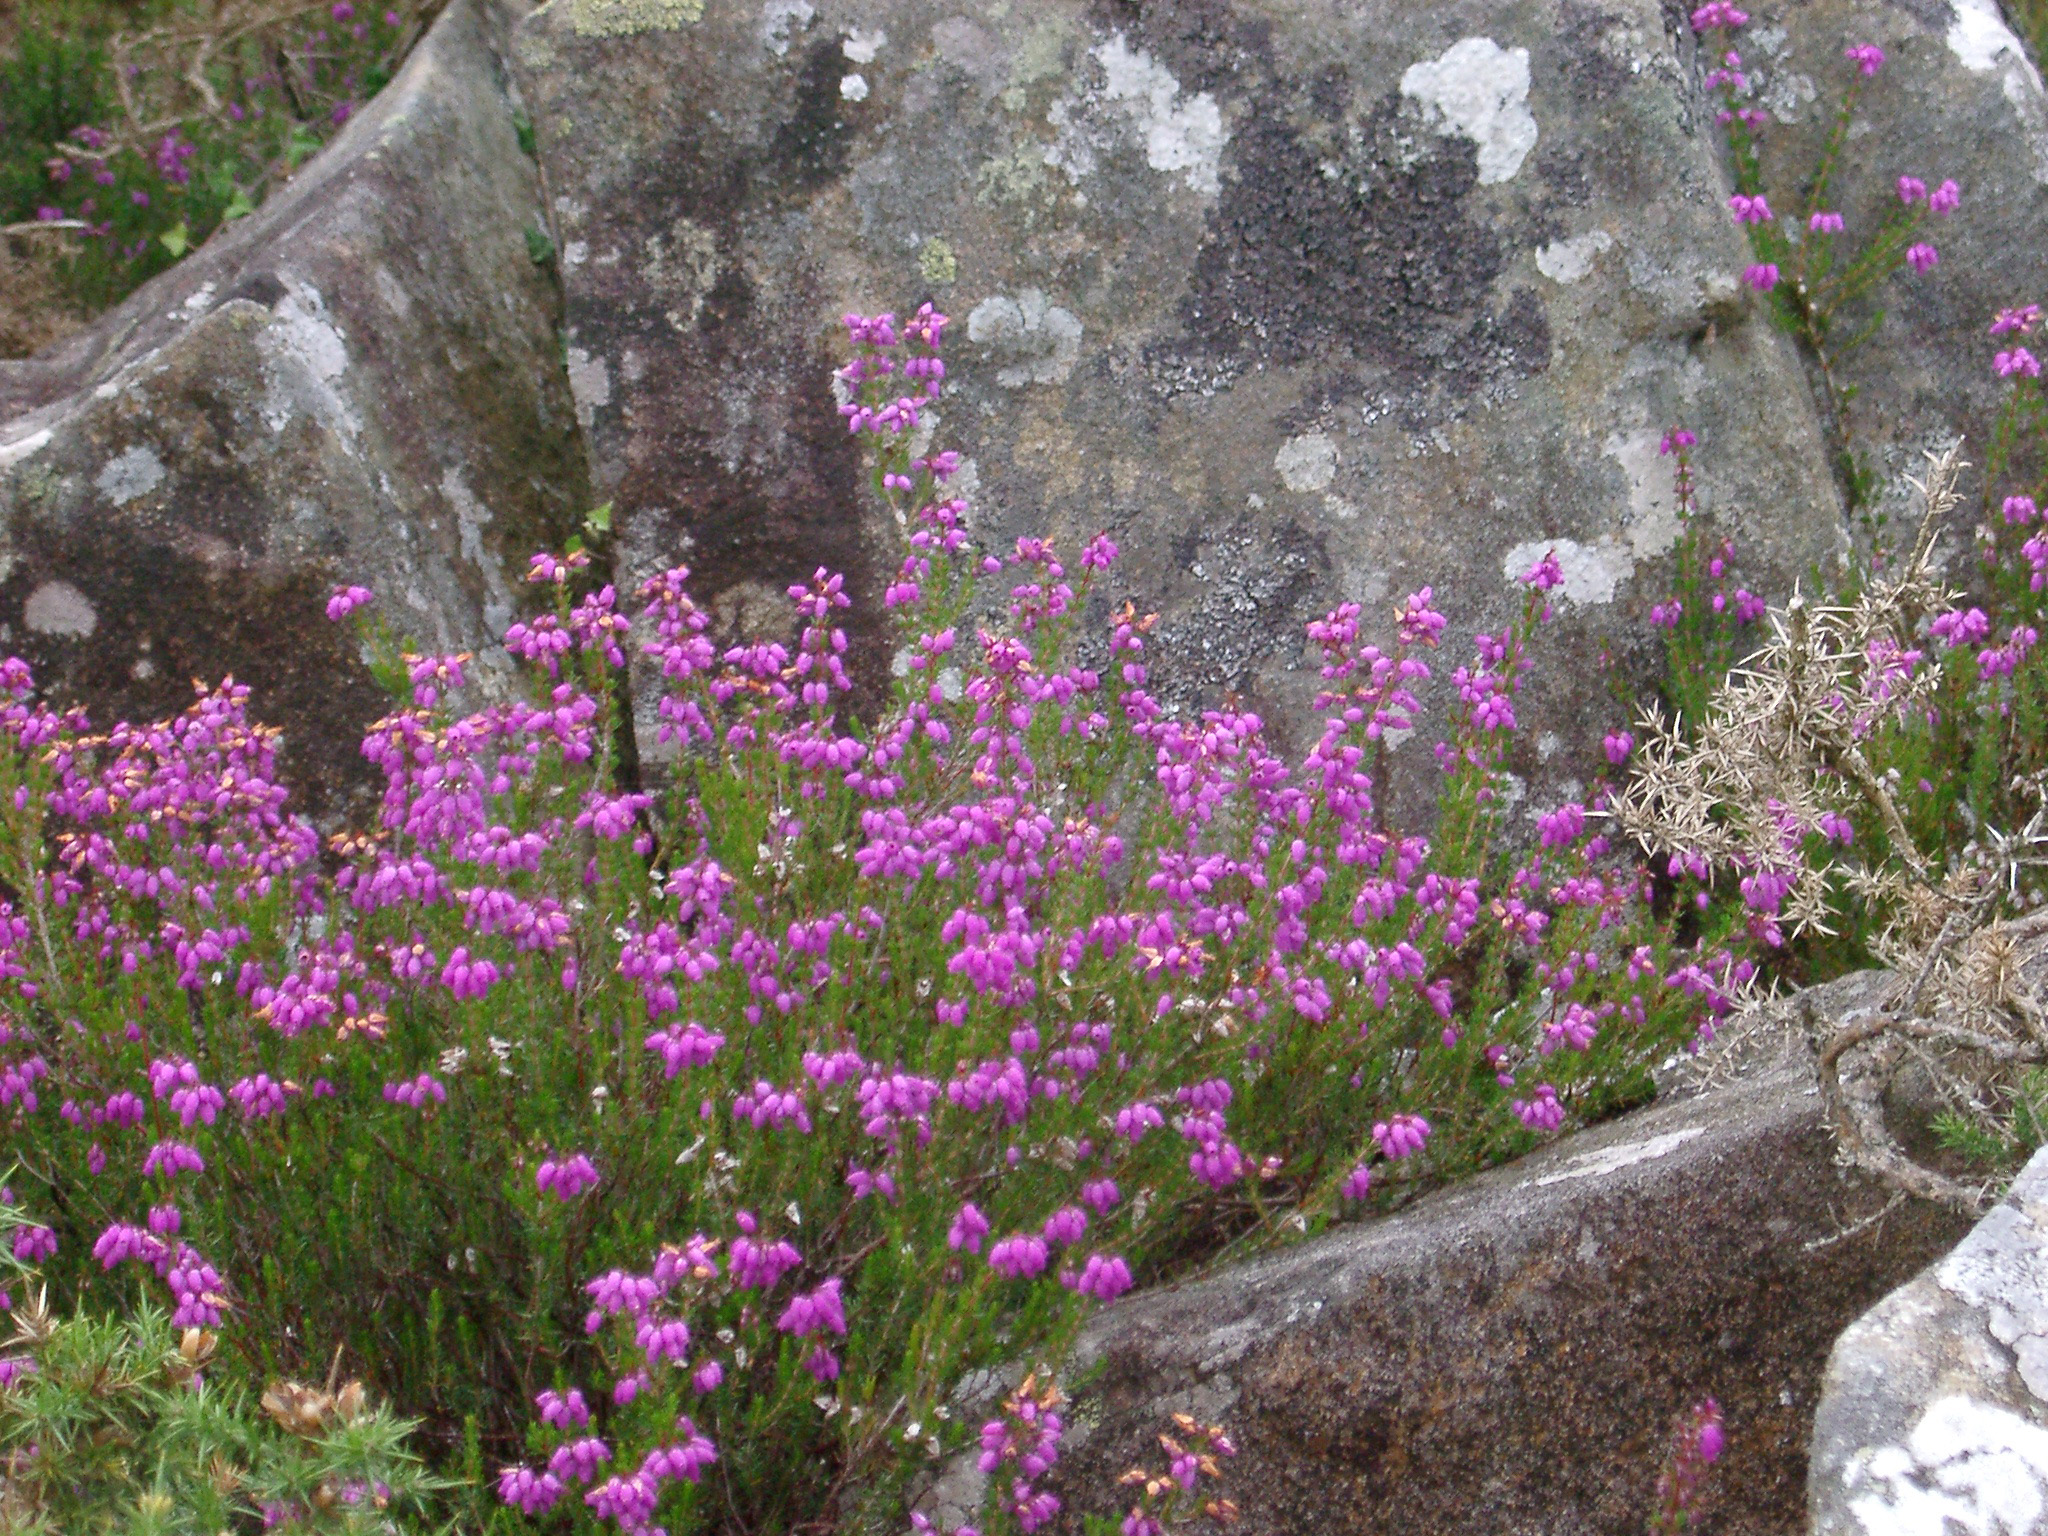 Colorful purple summer heather blooming in a crevasse in lichen covered rocks, close up view